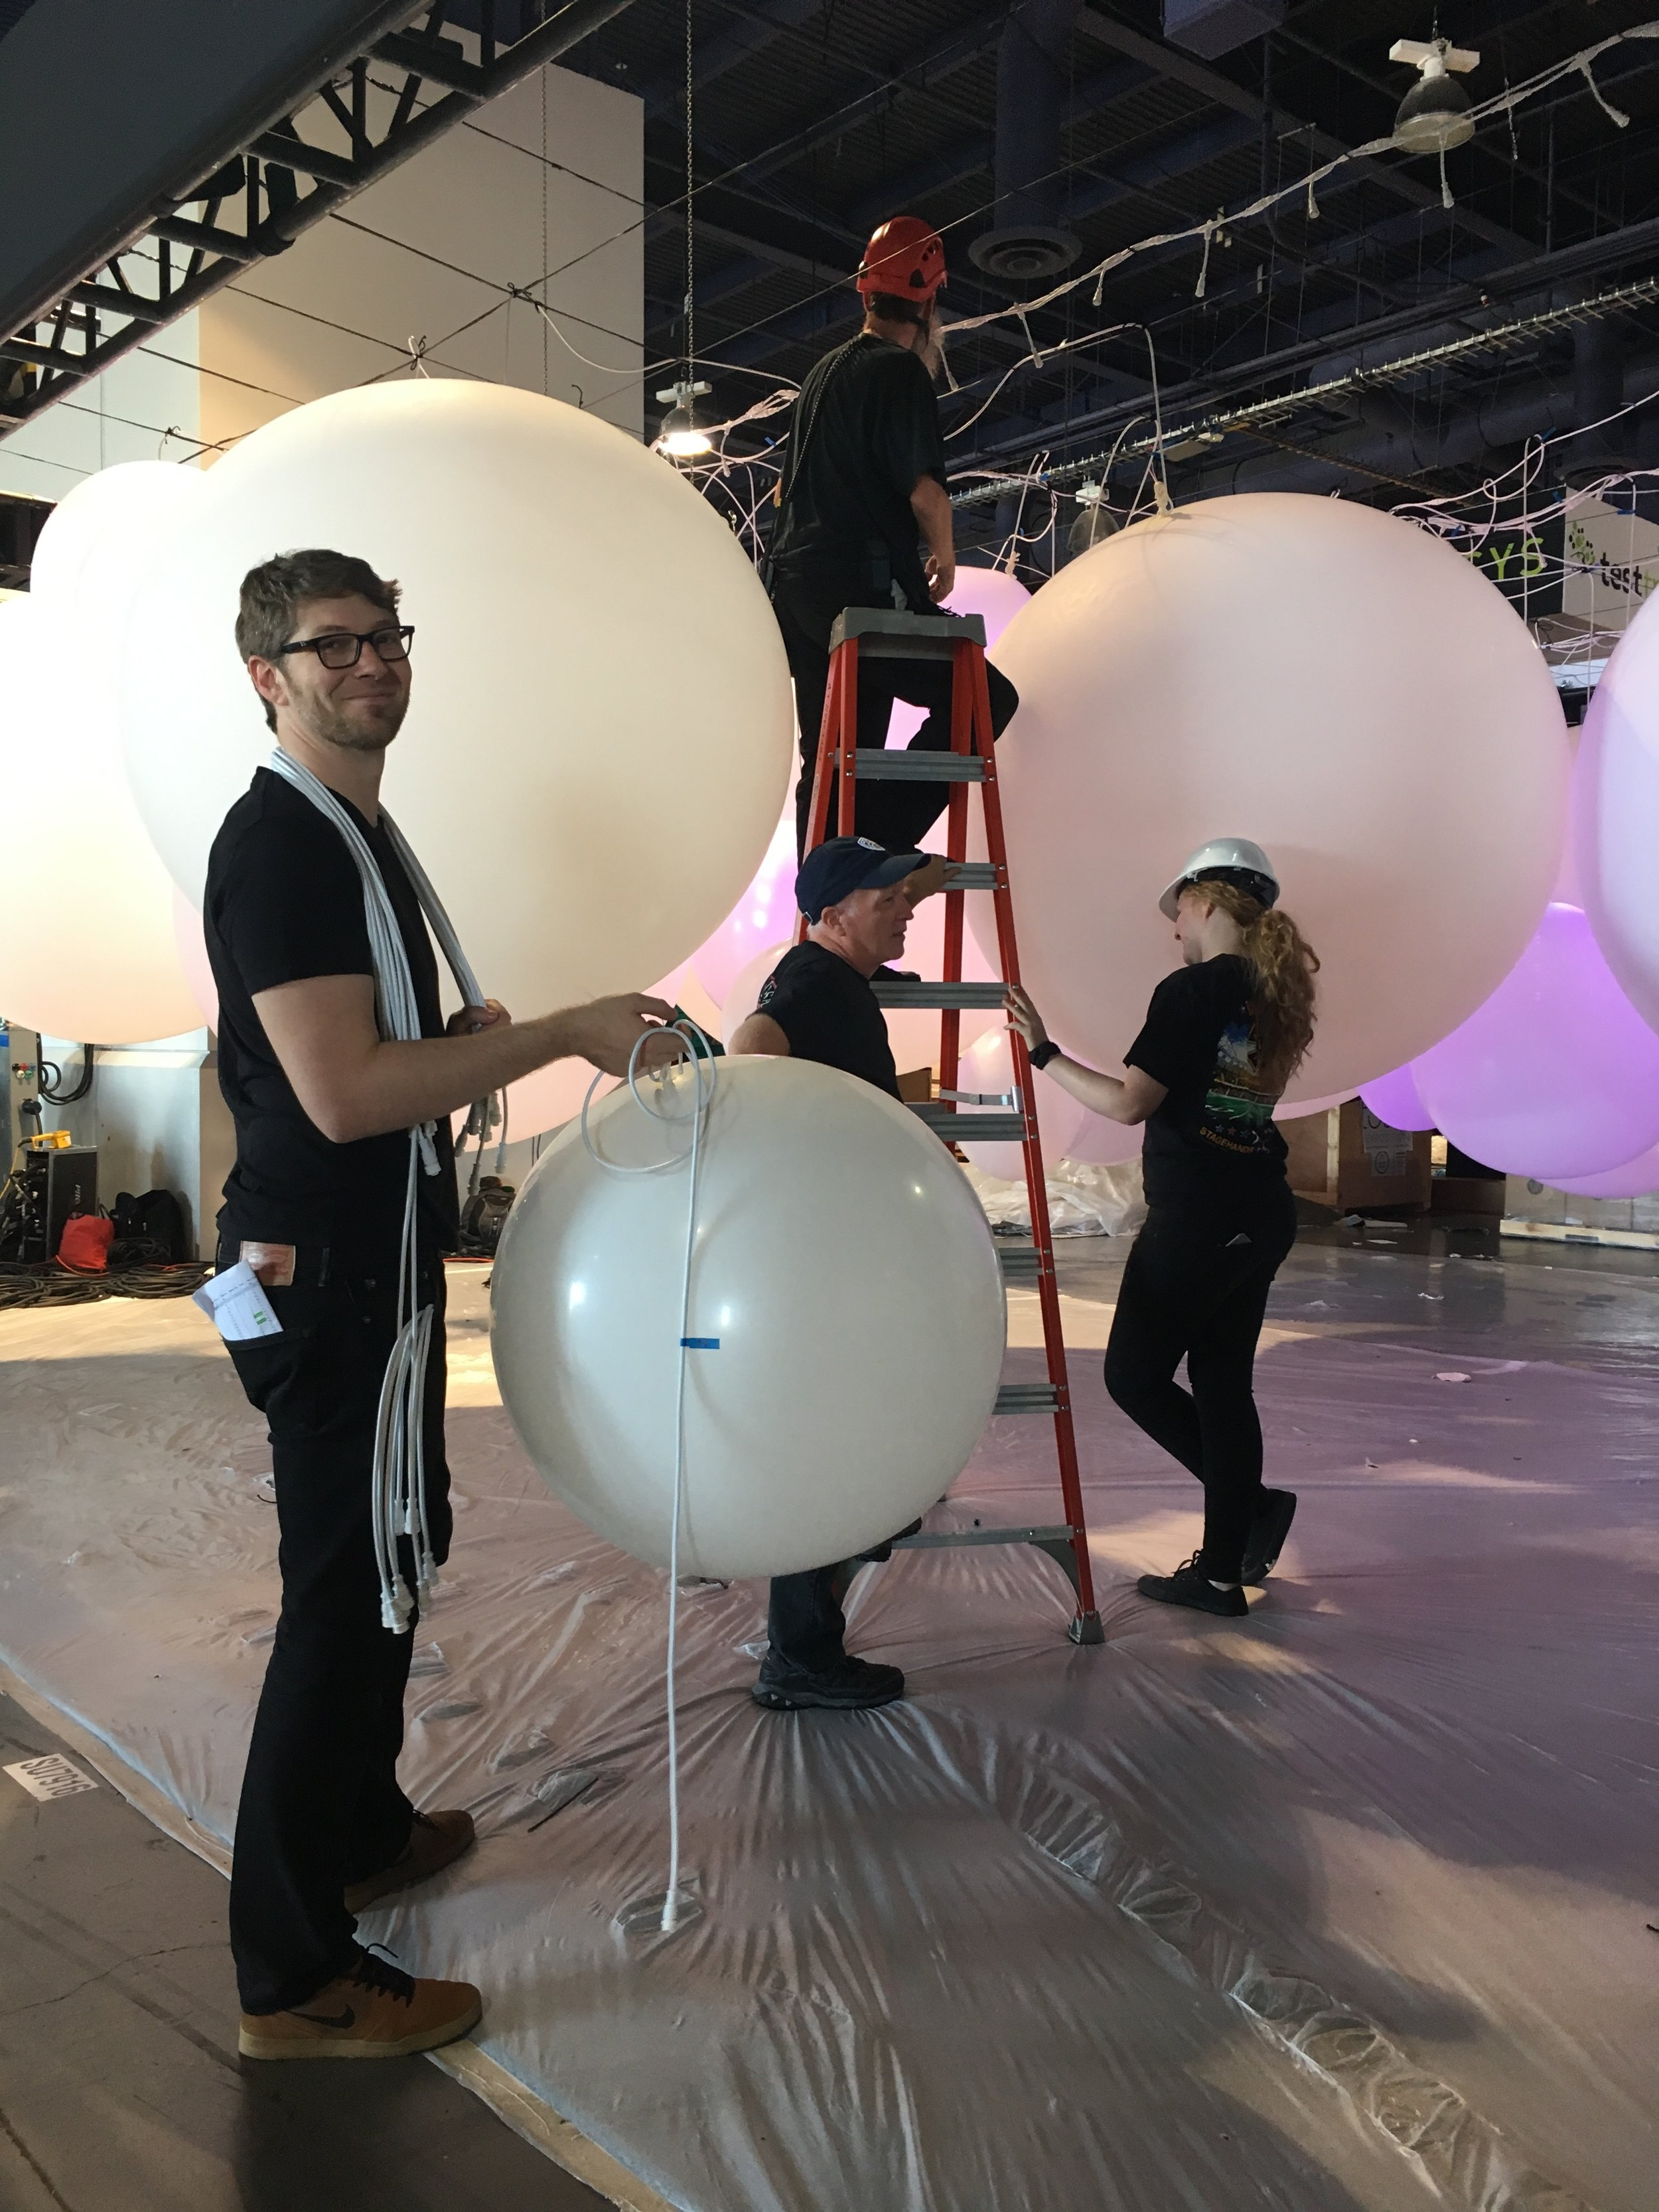 David teeing up the next balloon for universe 3.